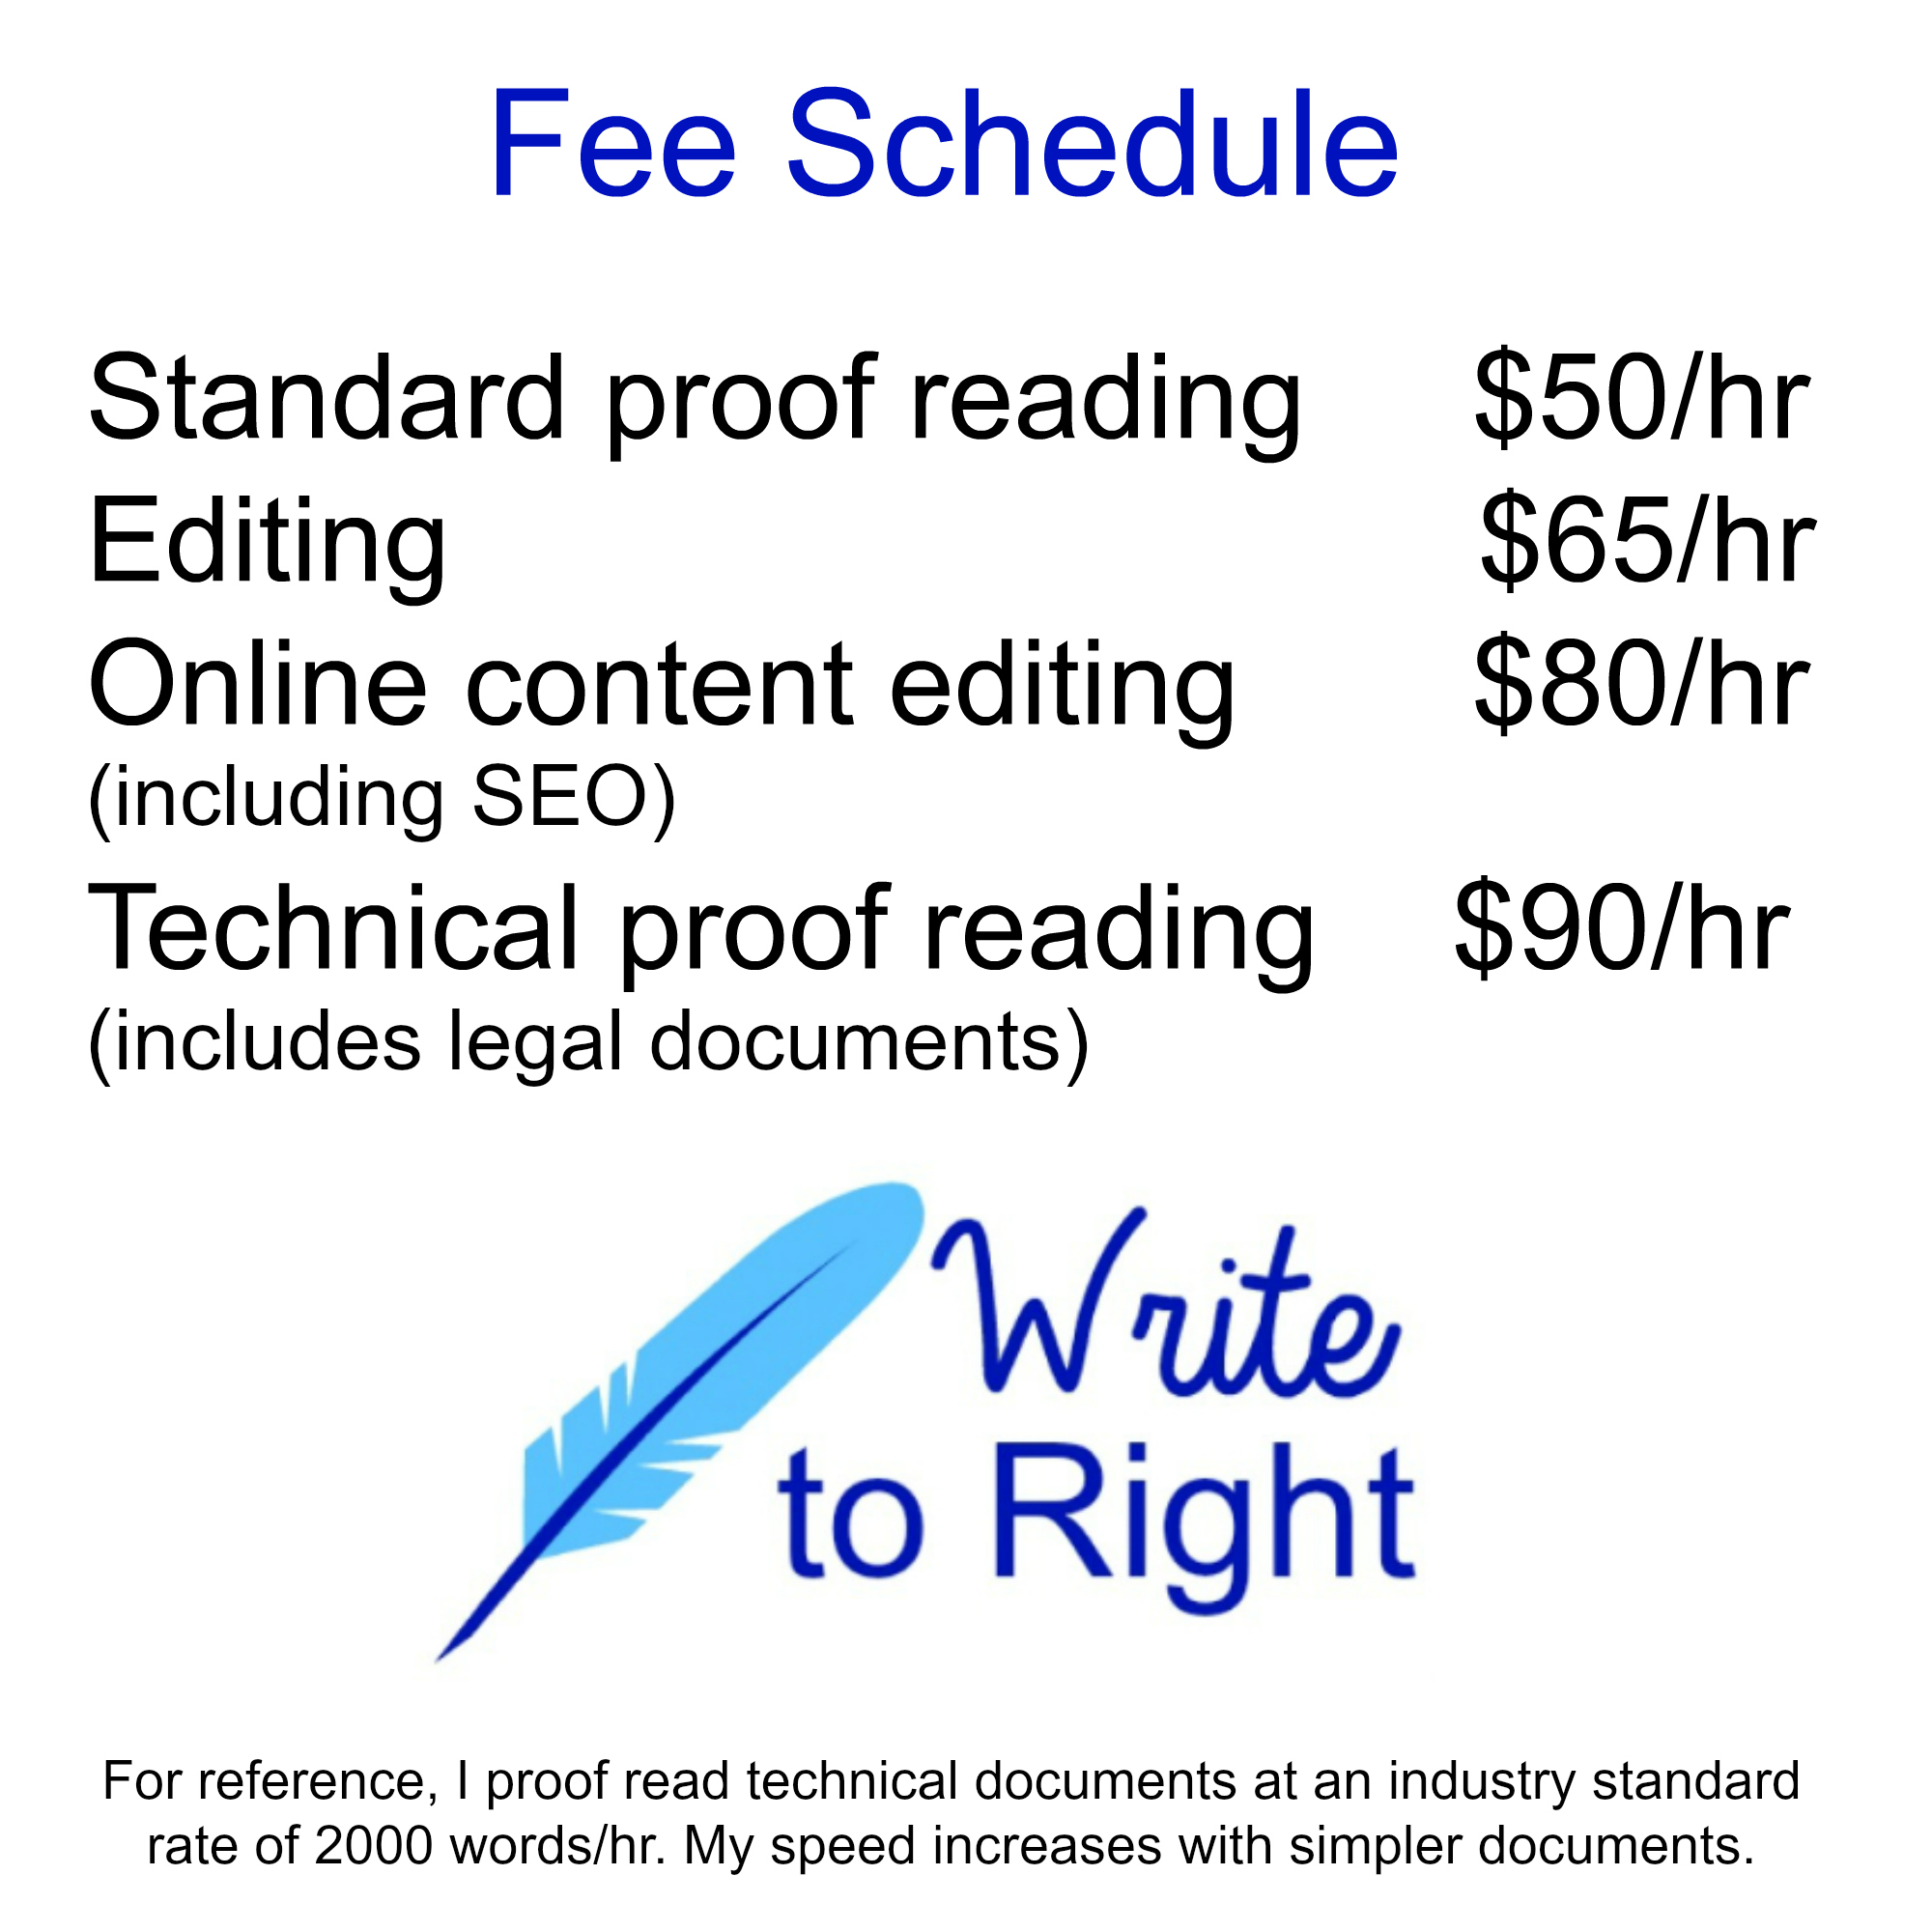 Wirte to Right fees at March 2014